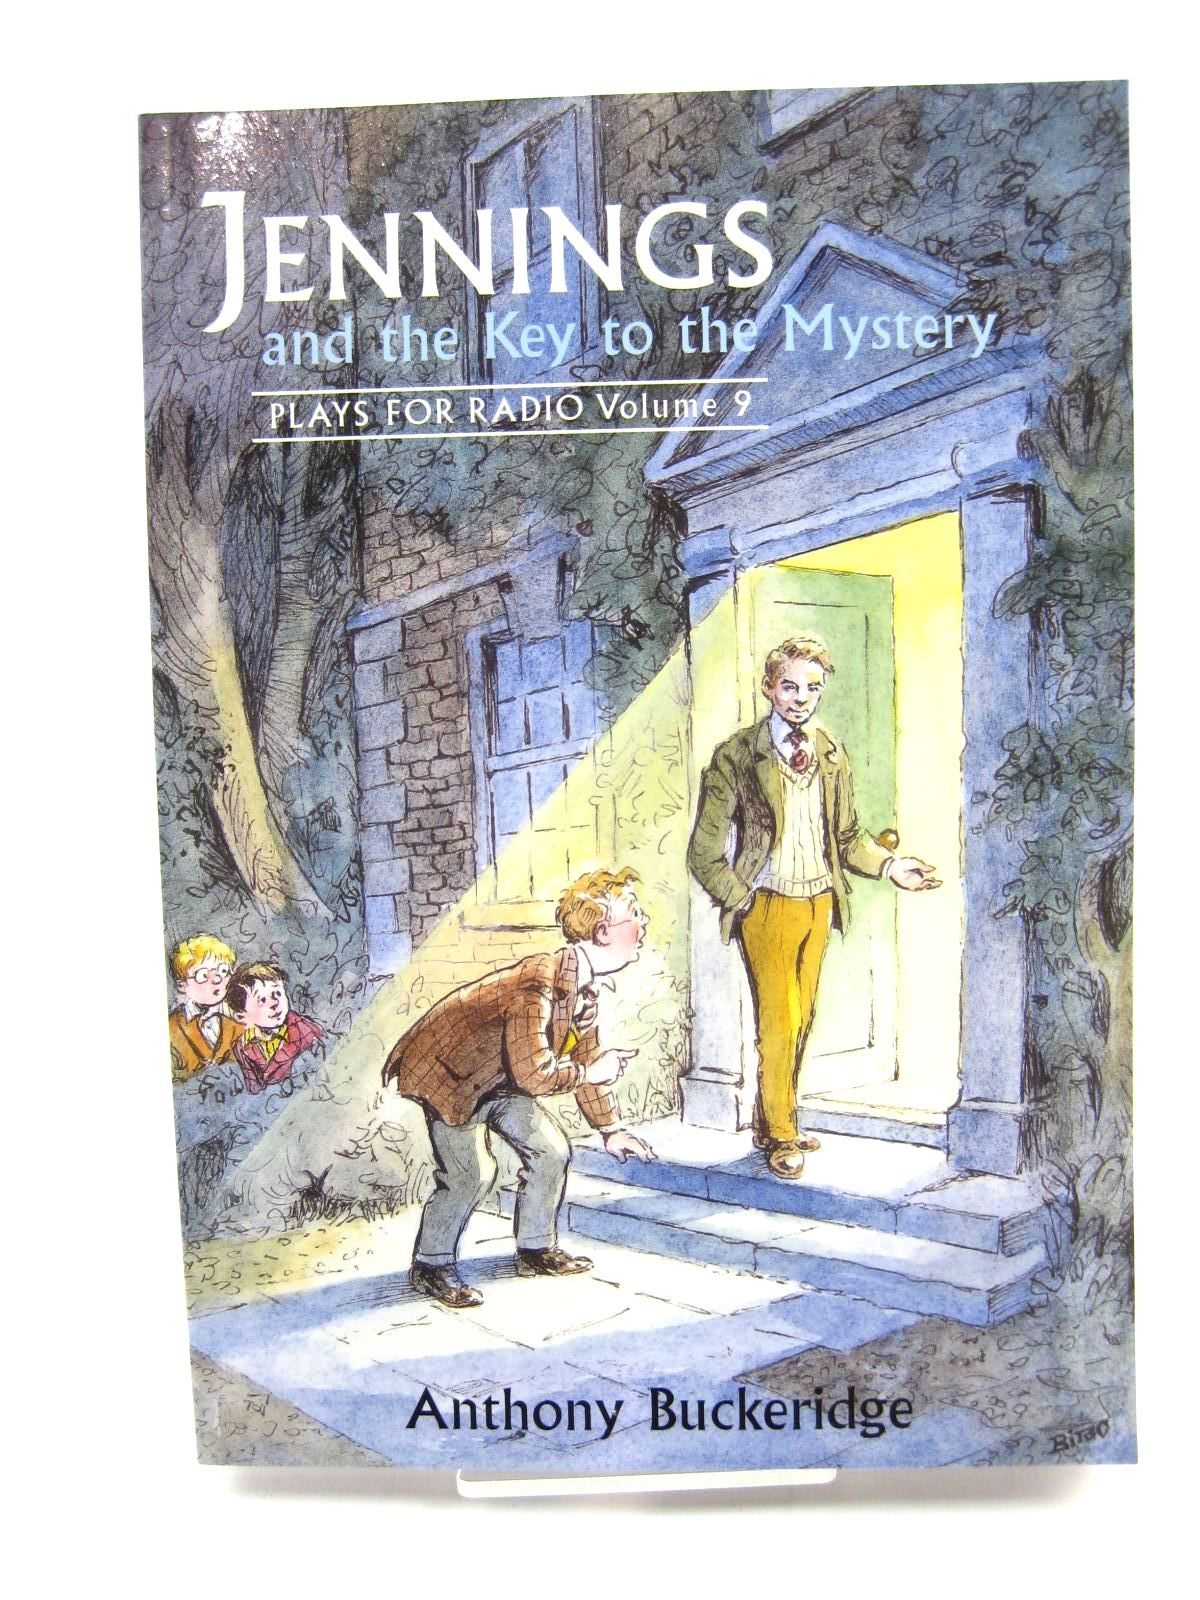 Photo of JENNINGS AND THE KEY TO THE MYSTERY written by Buckeridge, Anthony illustrated by Biro, Val published by David Schutte (STOCK CODE: 1316633)  for sale by Stella & Rose's Books